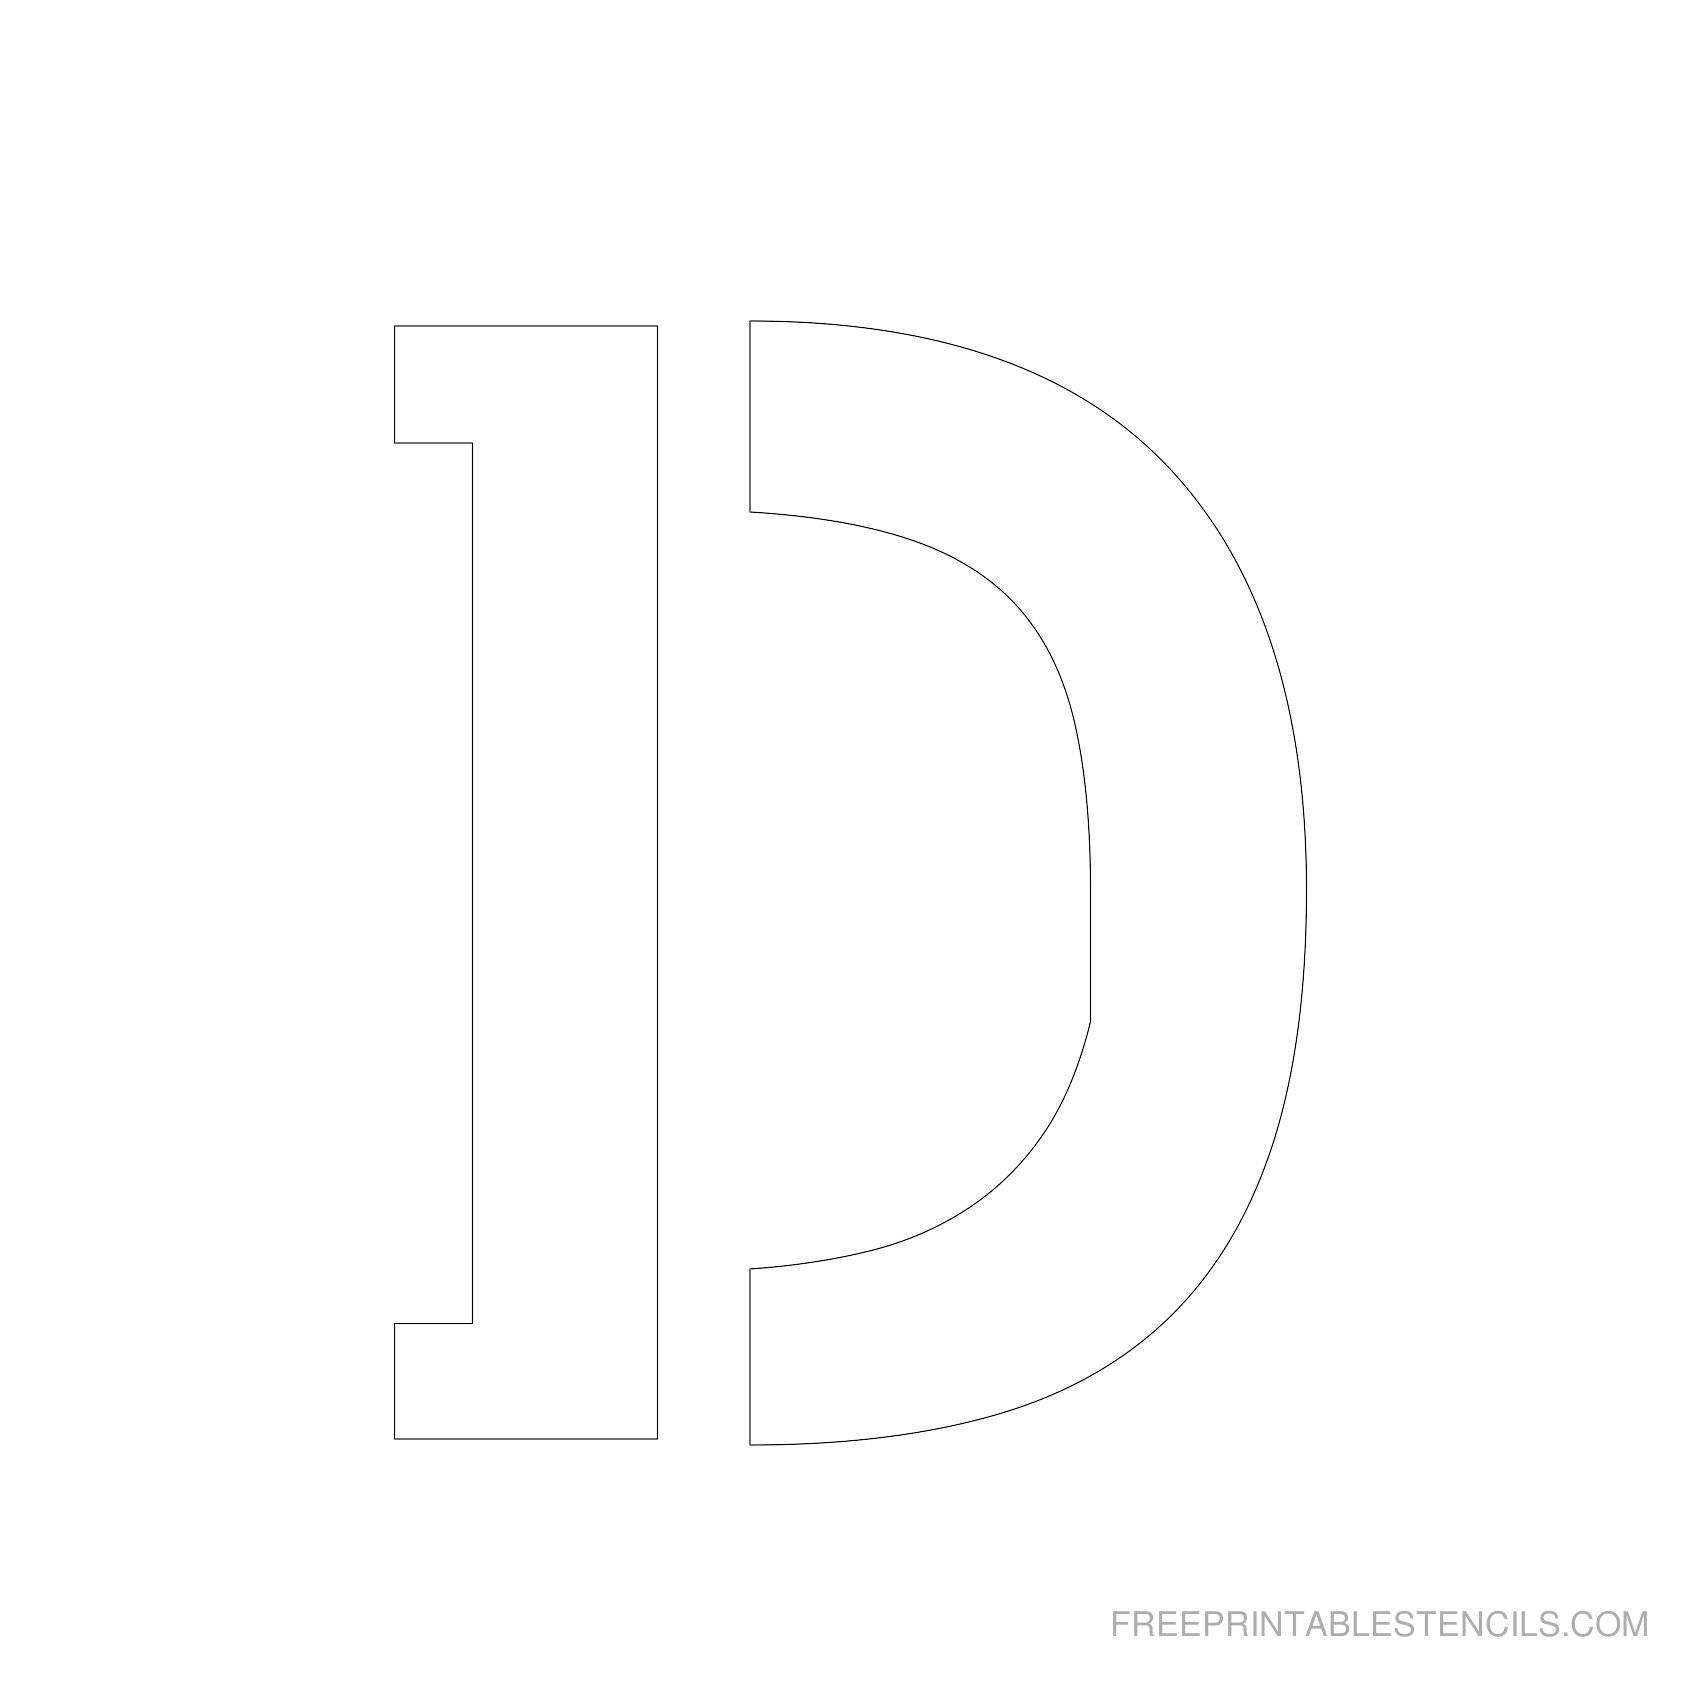 Letter Stencils To Print | Free Printable Stencils - Free Printable Alphabet Stencils